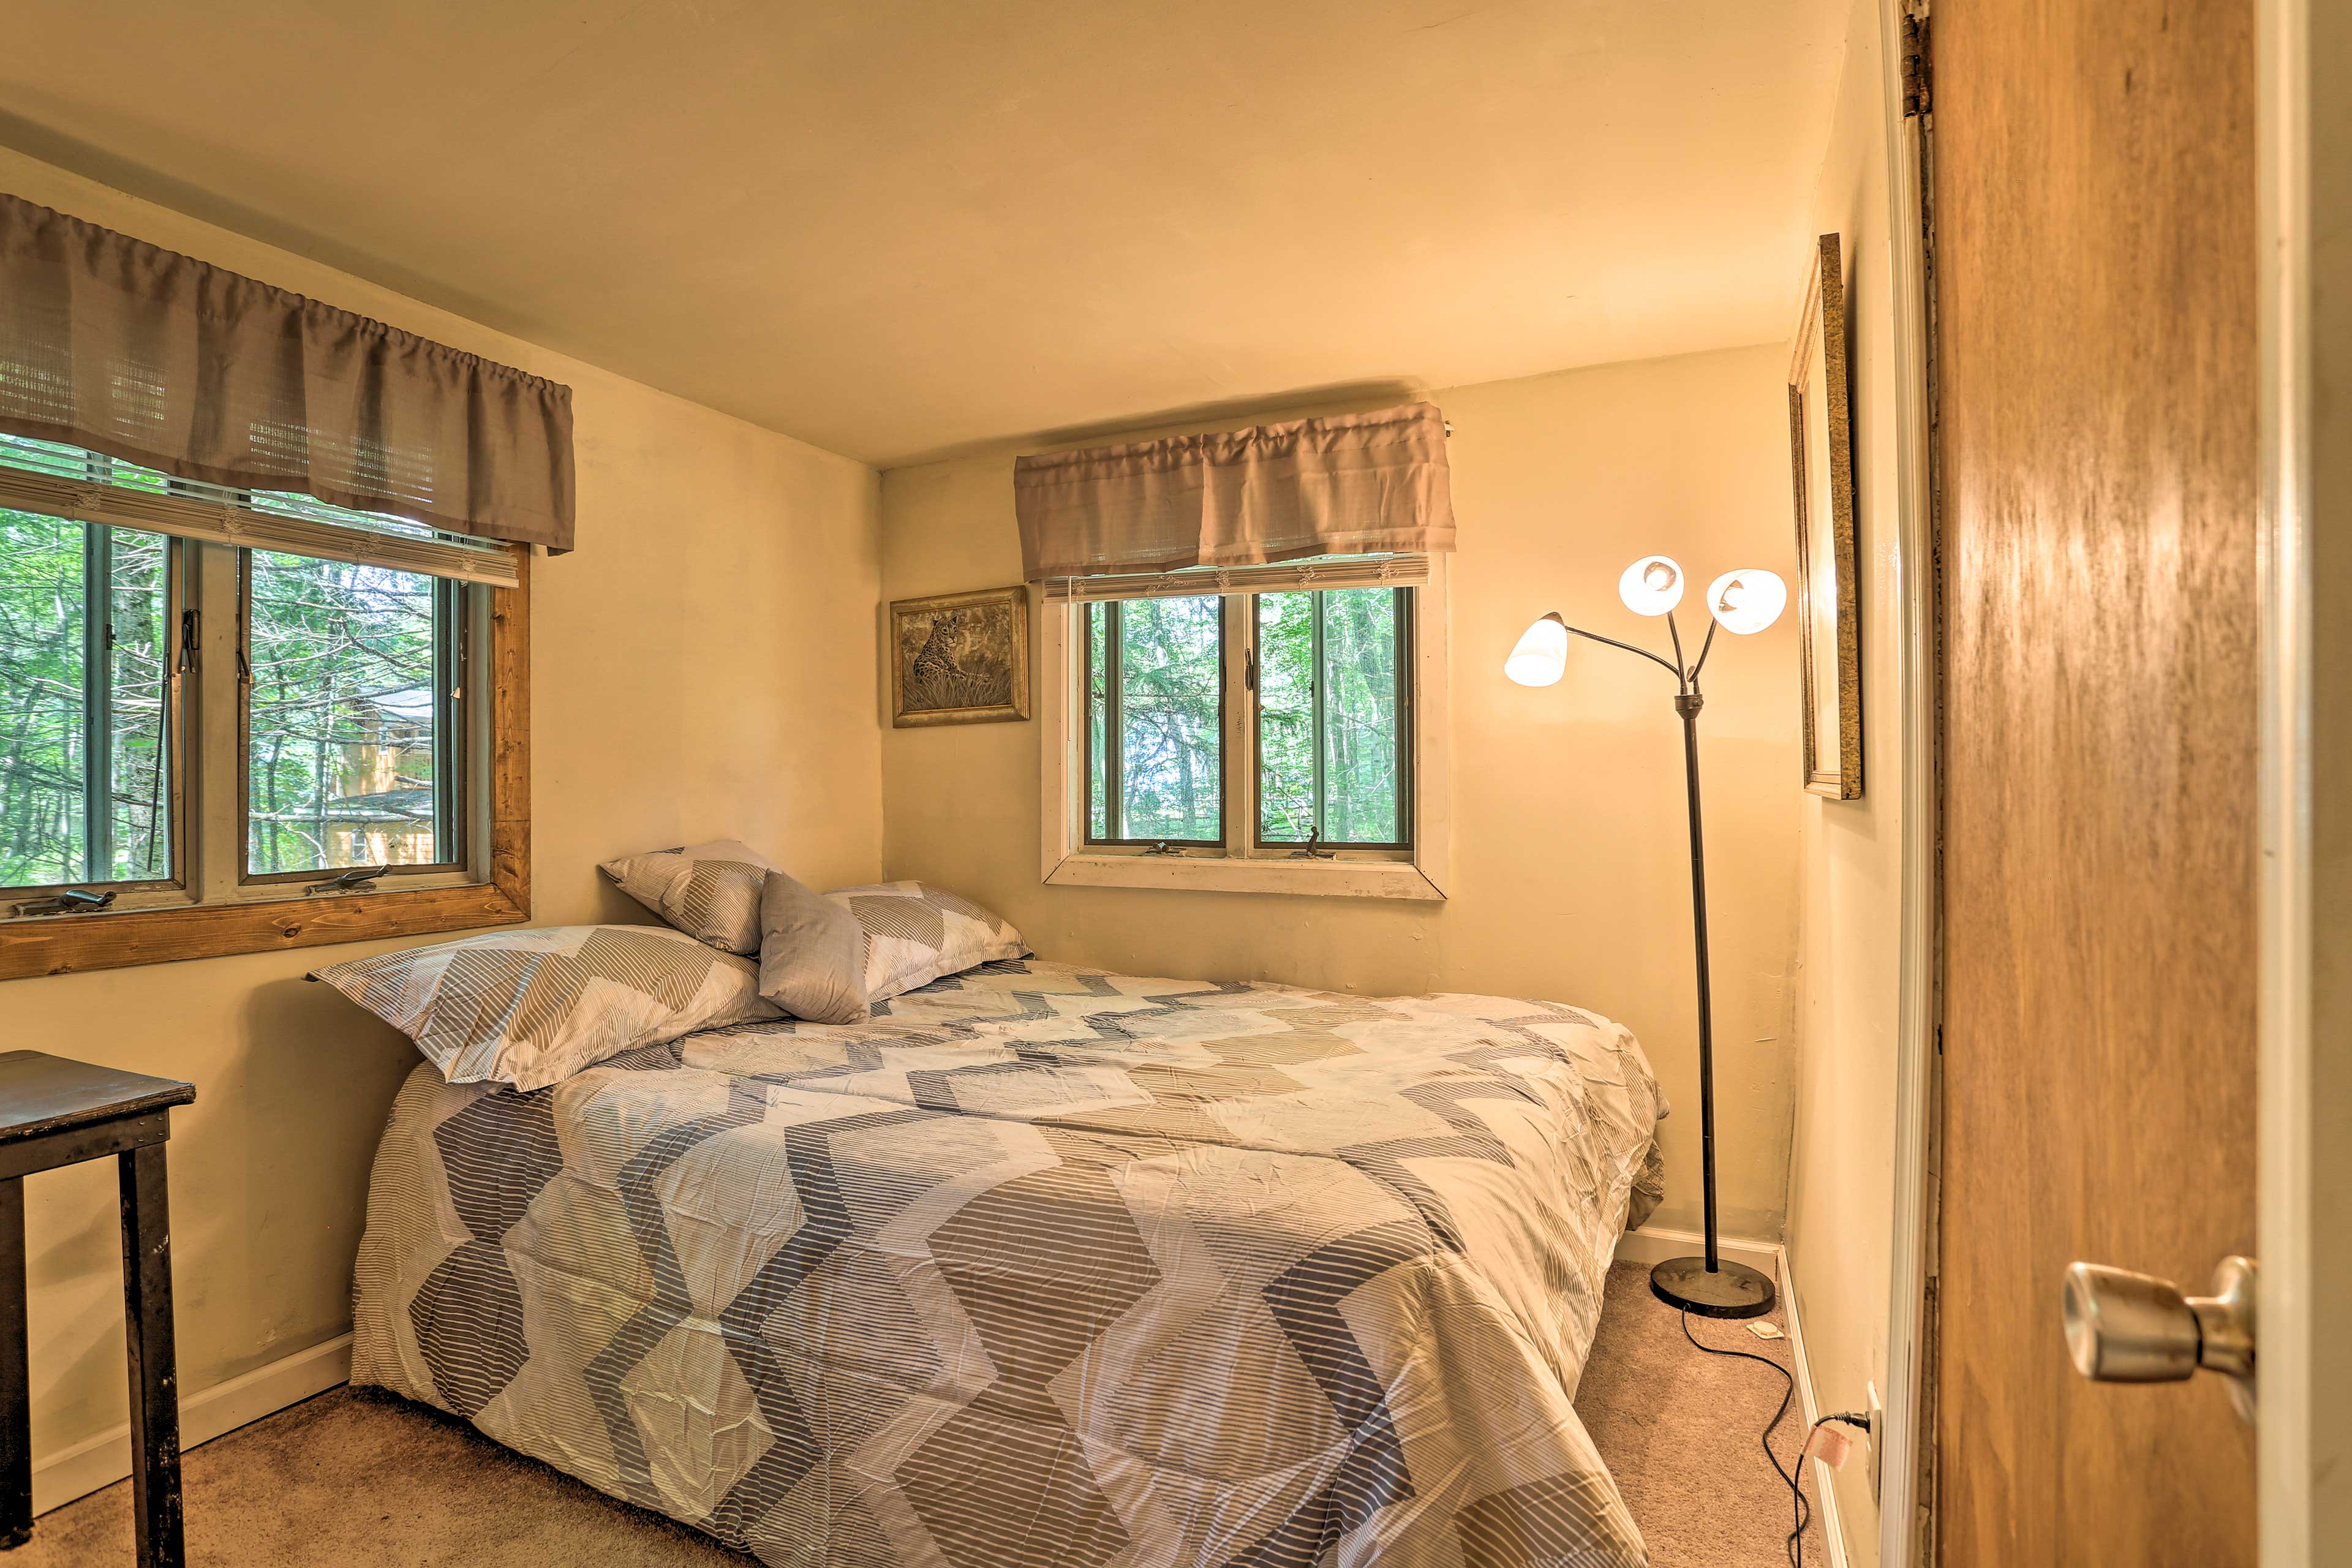 The master bedroom features a full-sized bed.